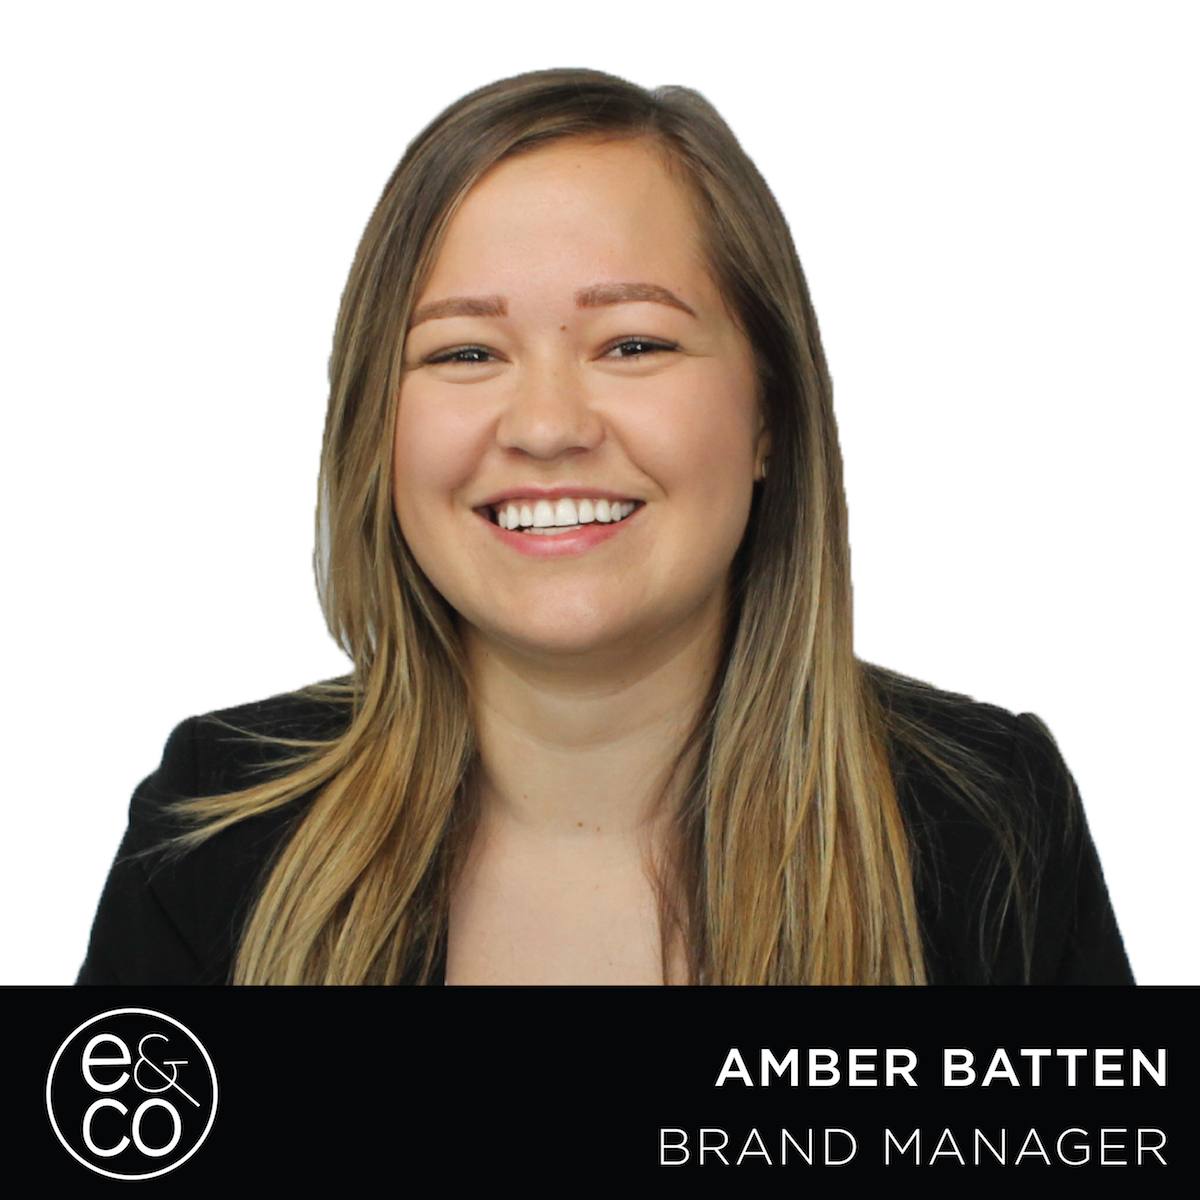 Q&A with Amber Batten | Brand Manager